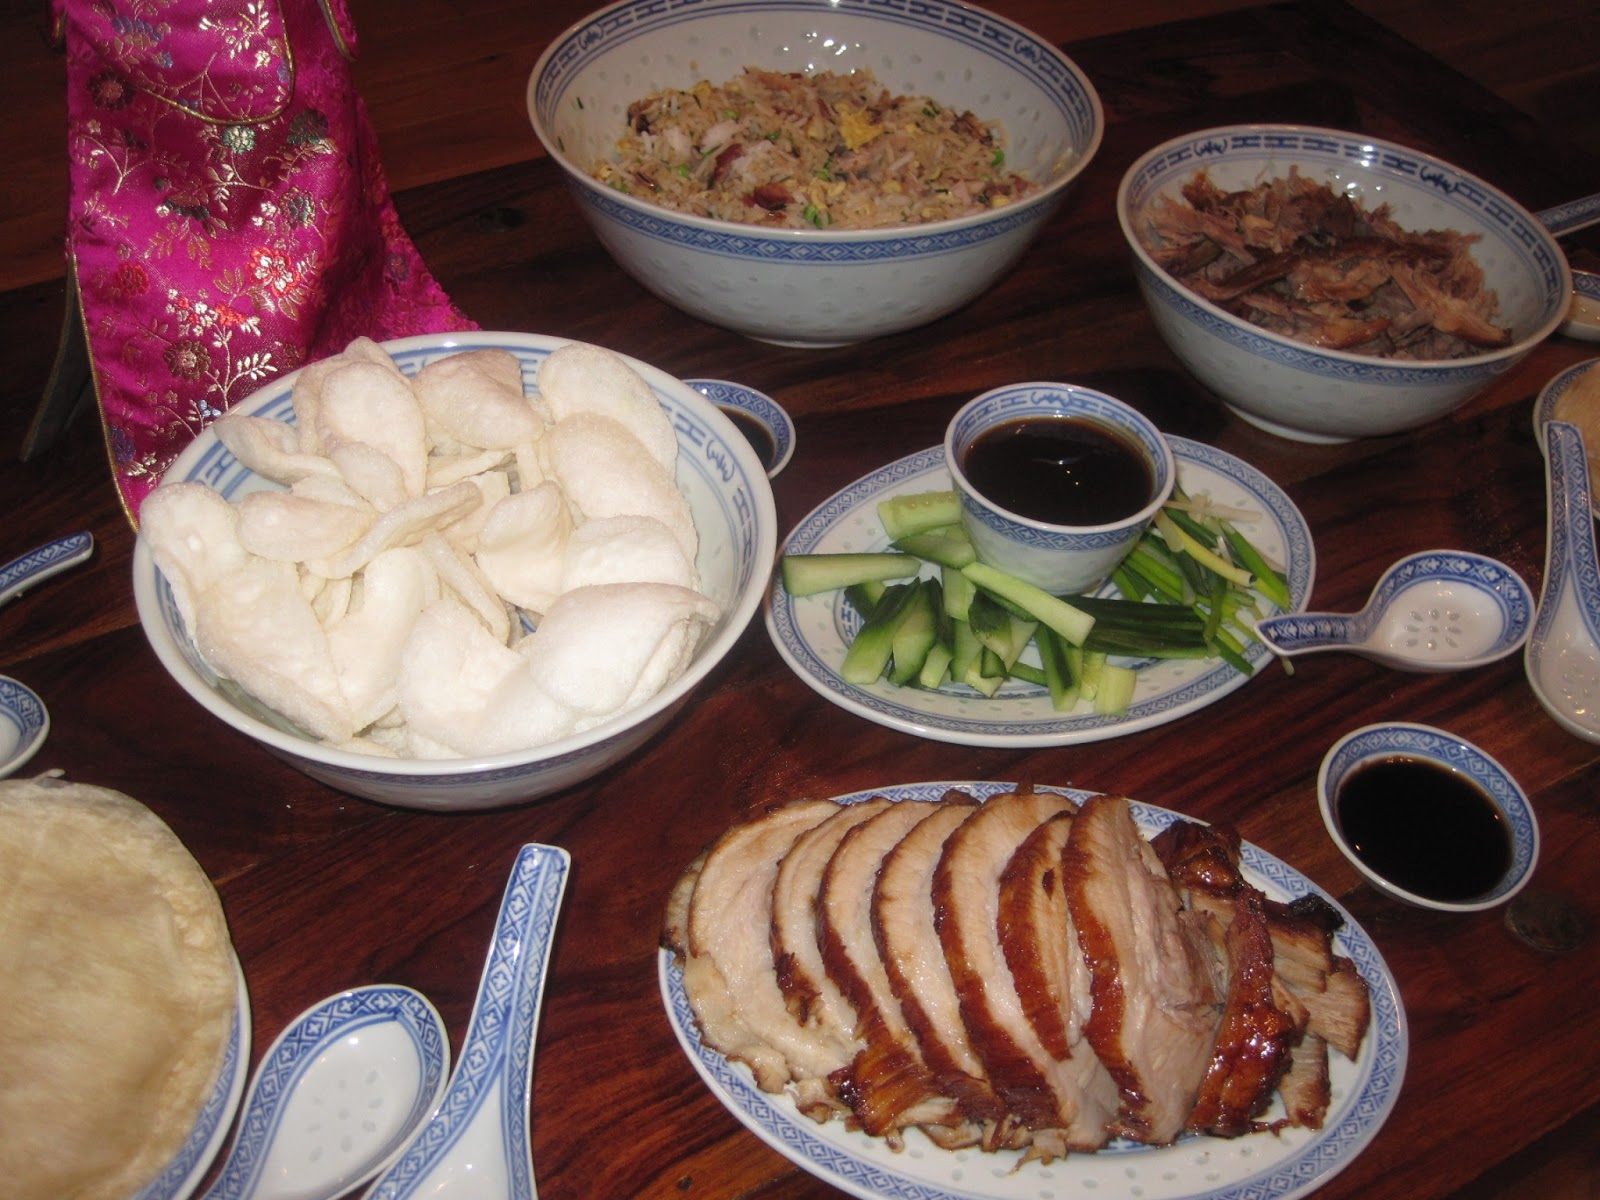 chinese celebrations involving food semantics Chinese festival food here provides you introduction to some special food for  the traditional chinese festivals/holidays such as dumplings for the chinese new .